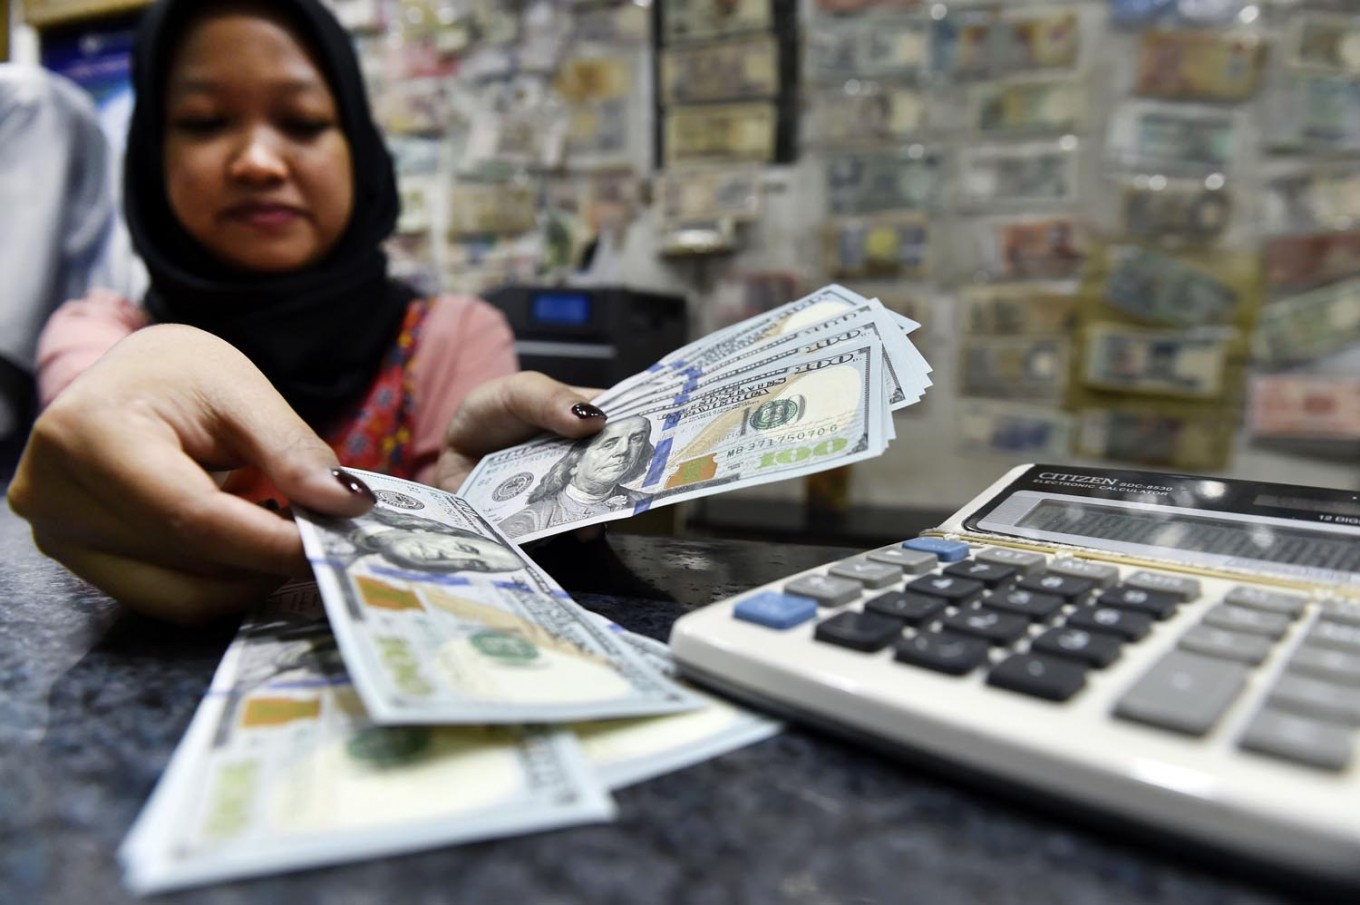 Rupiah sees strengthening trend over four days